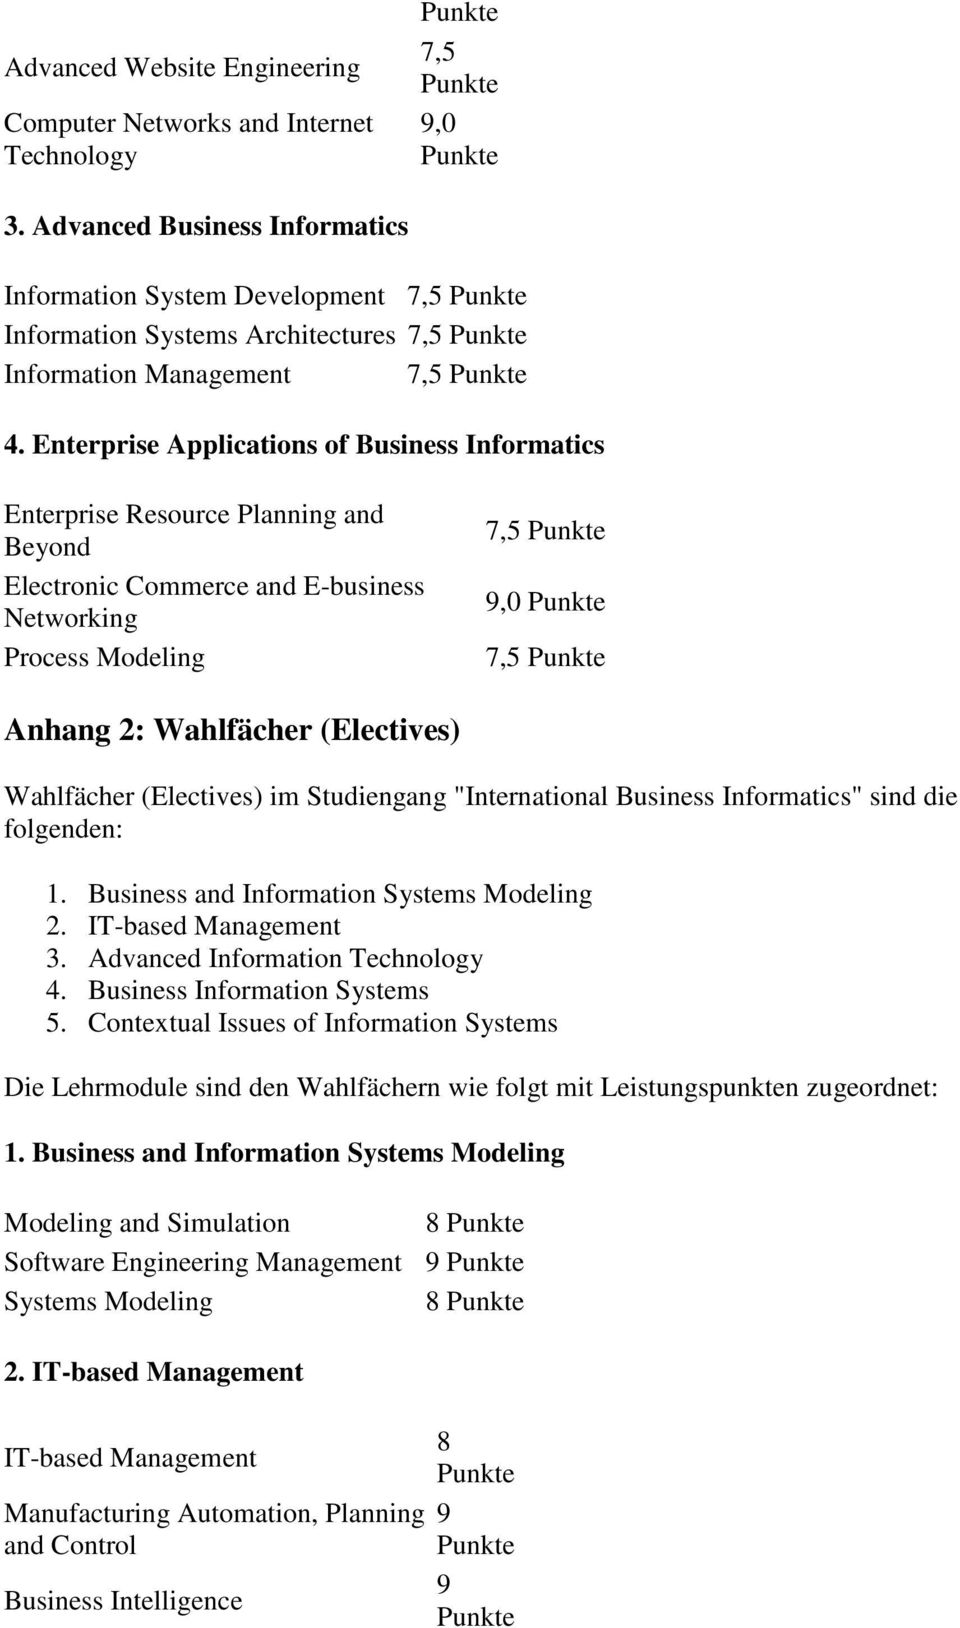 Enterprise Applications of Business Informatics Enterprise Resource Planning and Beyond Electronic Commerce and E-business Networking Process Modeling 7,5 9,0 7,5 Anhang 2: Wahlfächer (Electives)